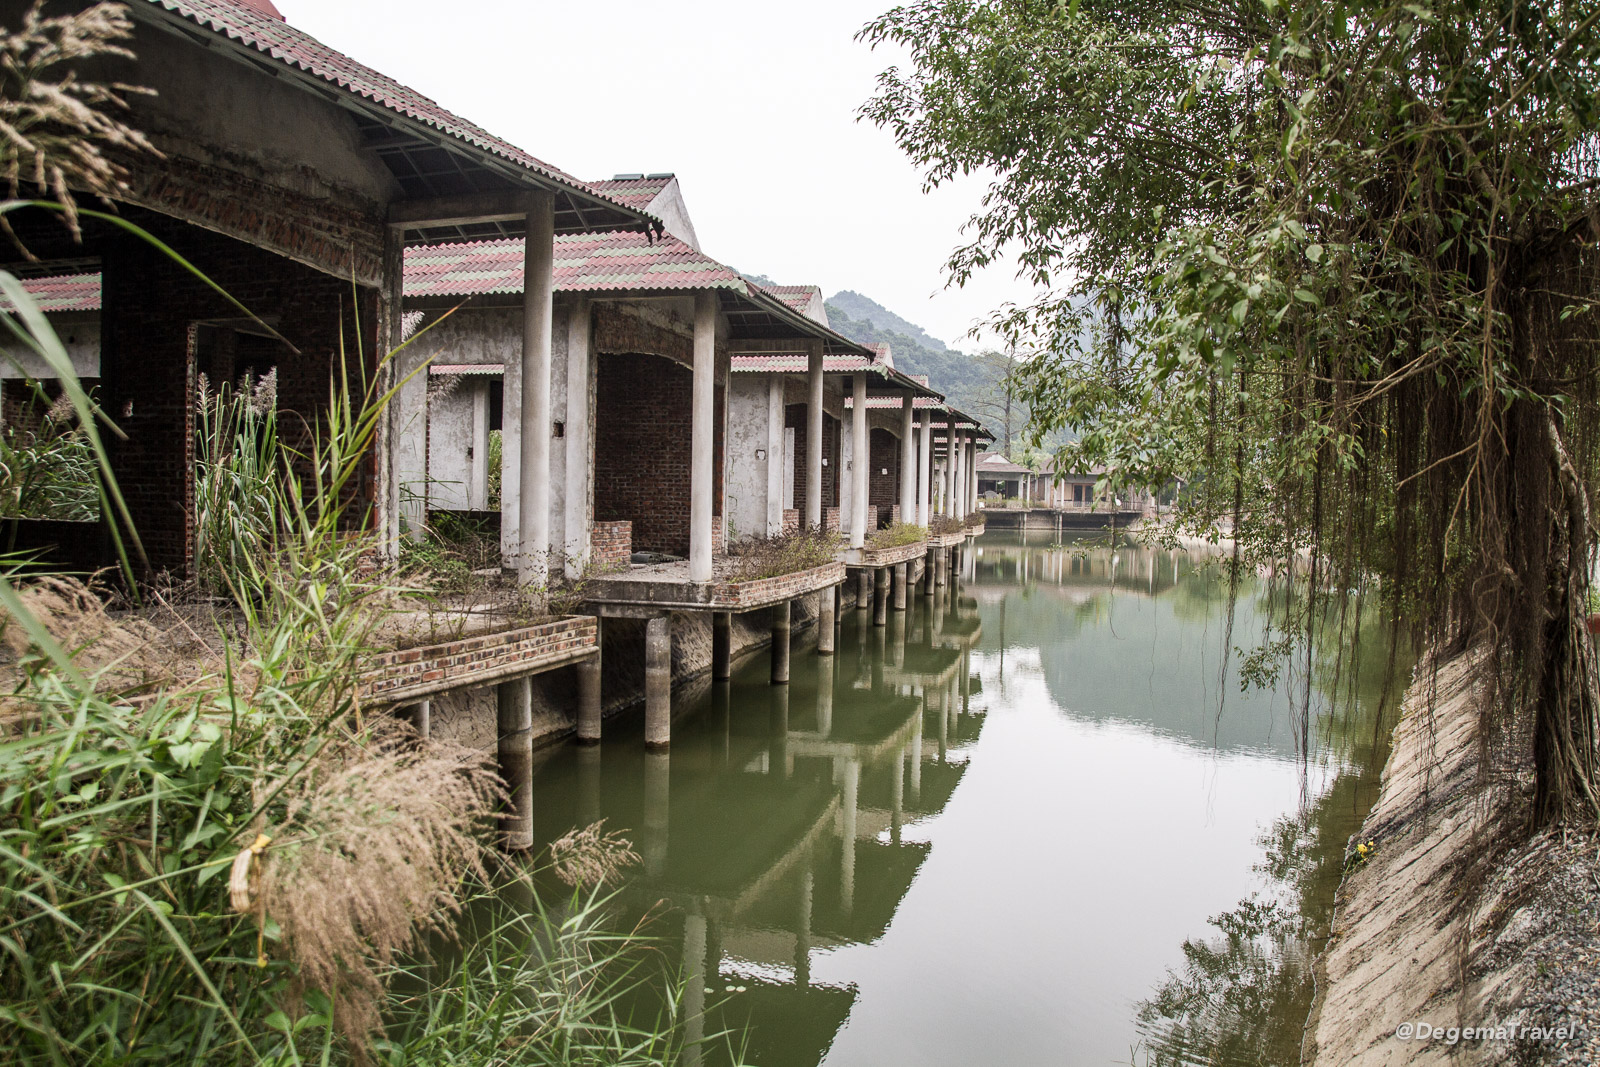 Abandoned hotel project near Ninh Binh, Vietnam